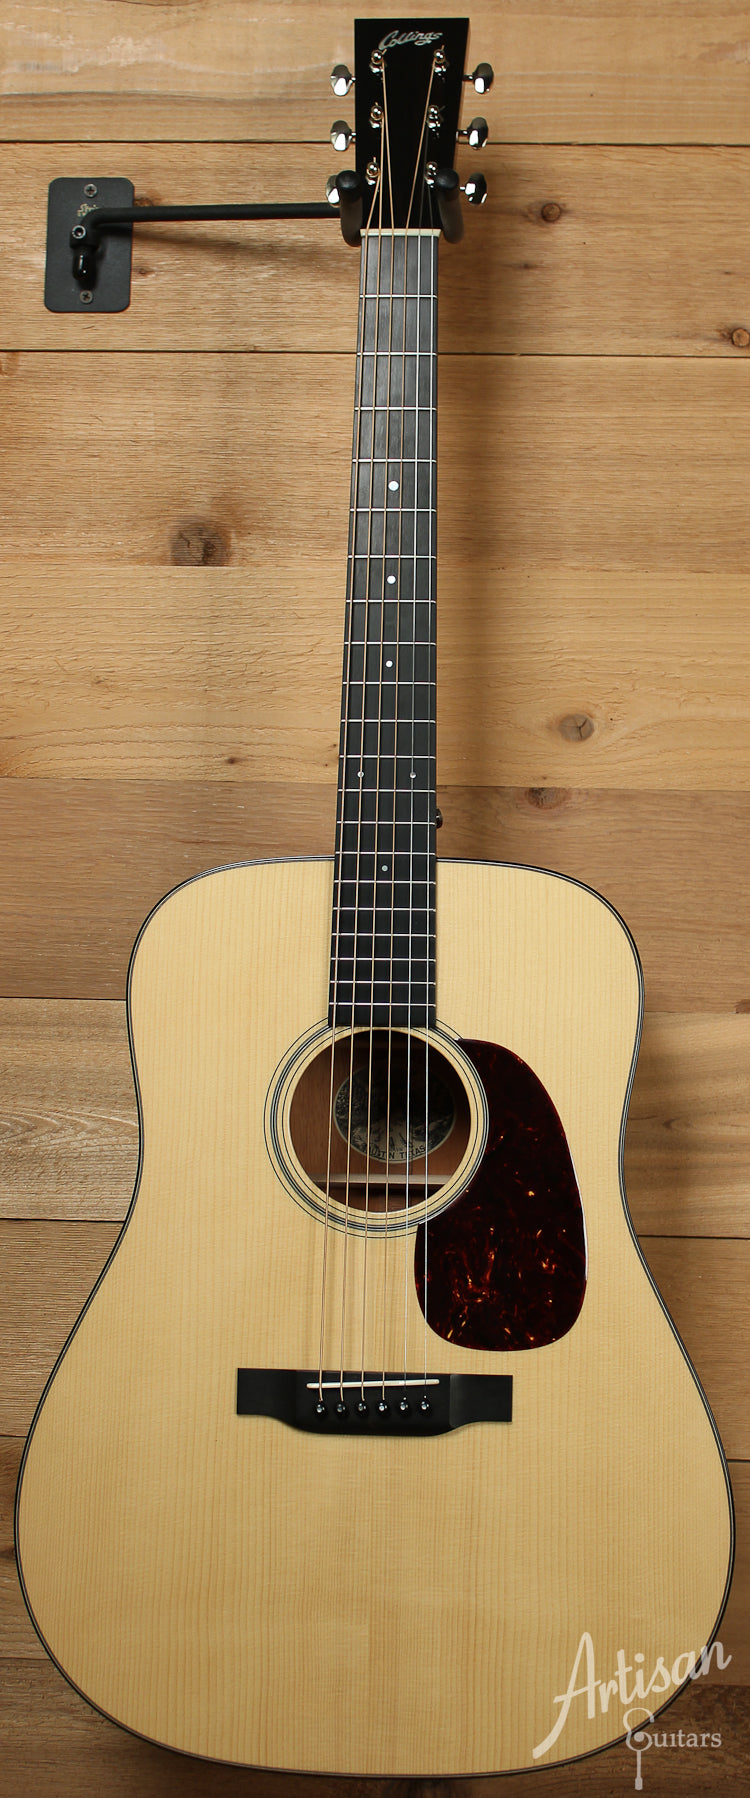 Pre Owned 2013 Collings D1A Adirondack with Vintage Now Neck ID-7953 - Artisan Guitars